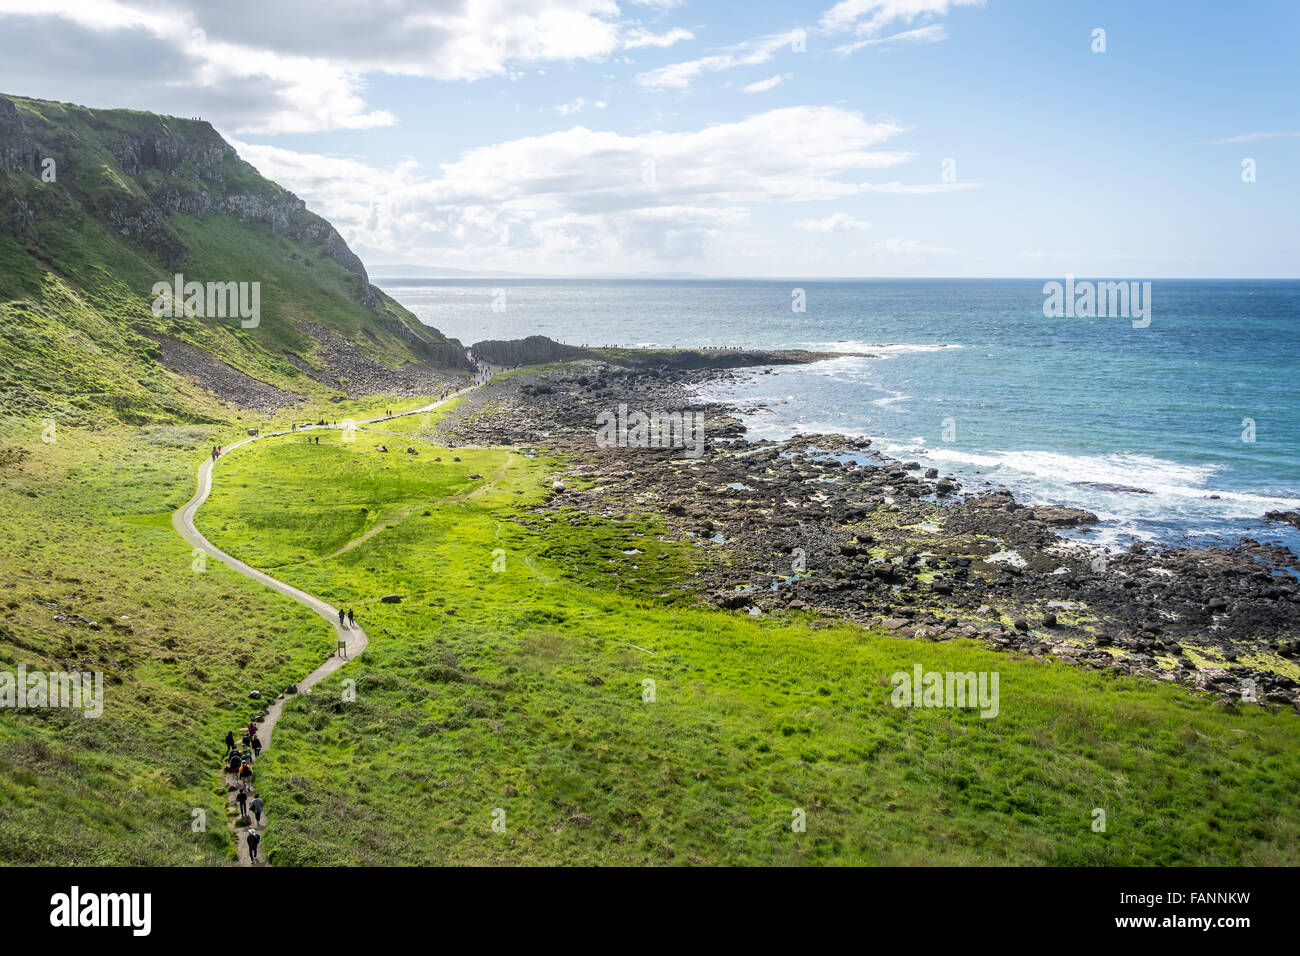 Trail leading to the Giant's Causeway on Ireland's North Coast. - Stock Image